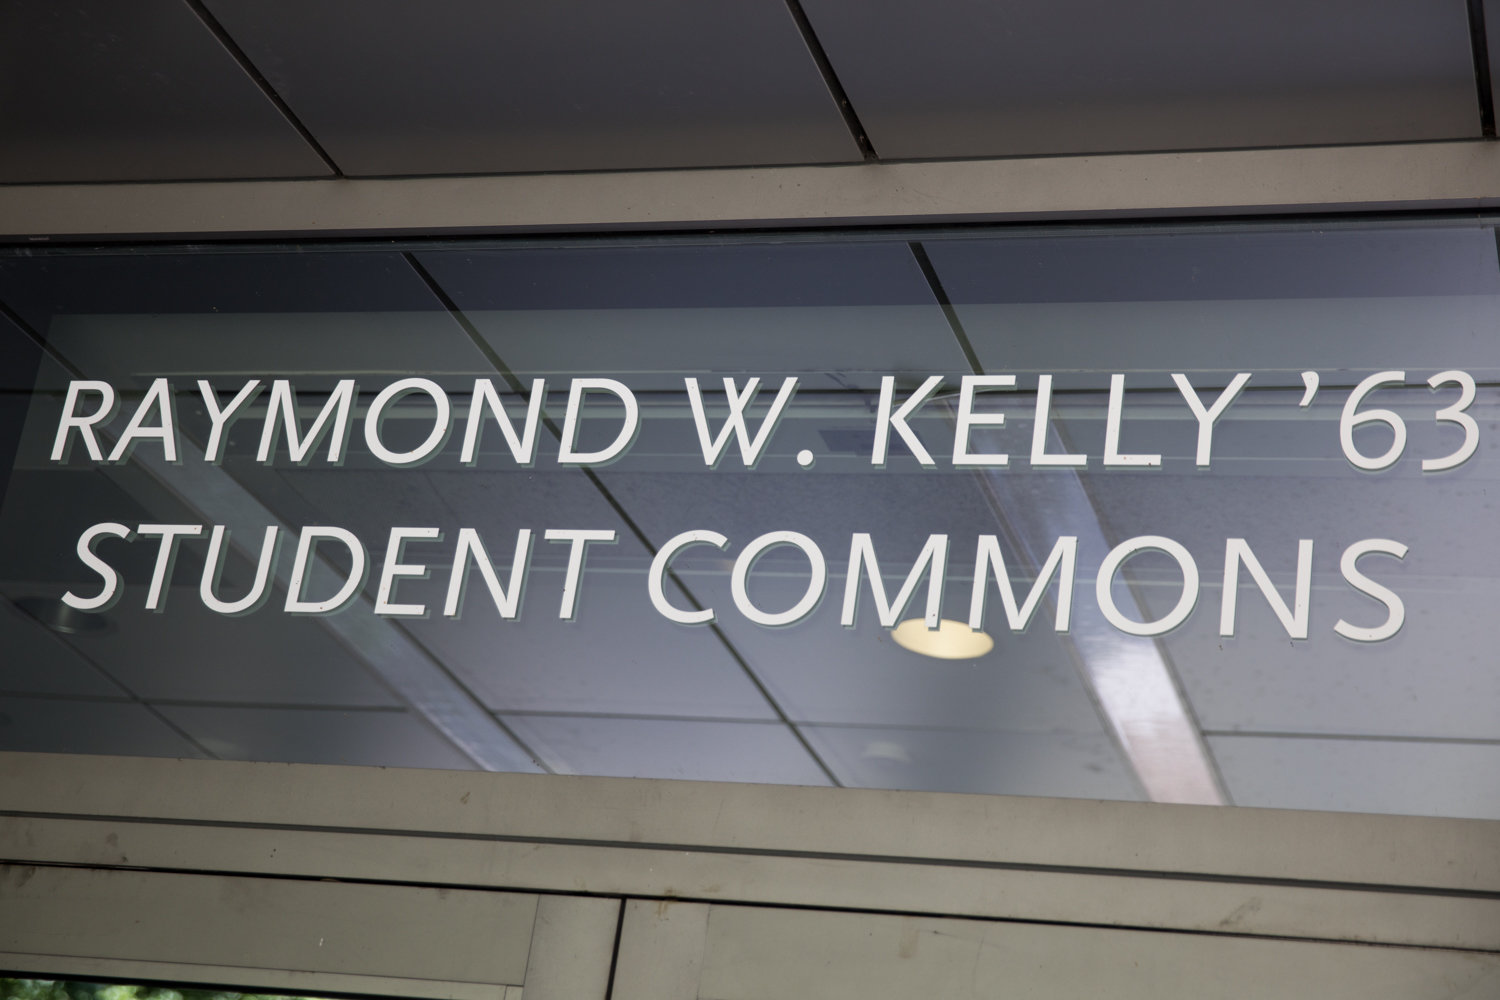 A 1963 alum of Manhattan College, Raymond Kelly is more widely known as the longest-serving police commissioner in the city's history. Yet, students and faculty are pushing to rename his Kelly Commons campus building in light of the protests against police brutality that have swept the nation.